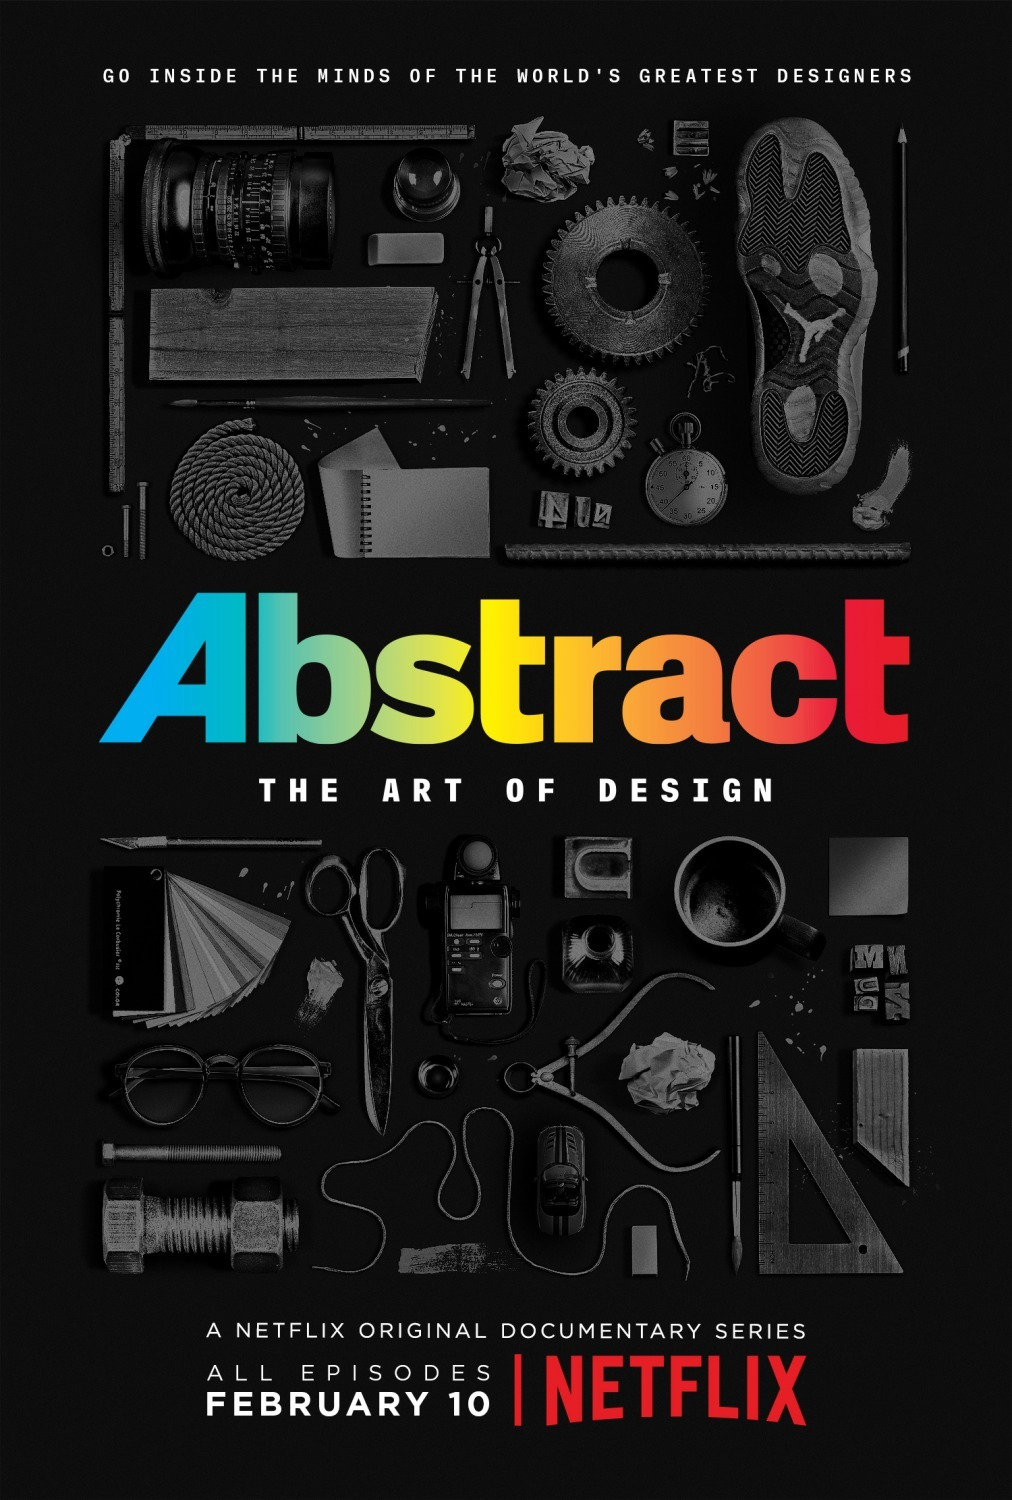 Abstract: The Art of Design (TV Series 2017– ) - IMDb